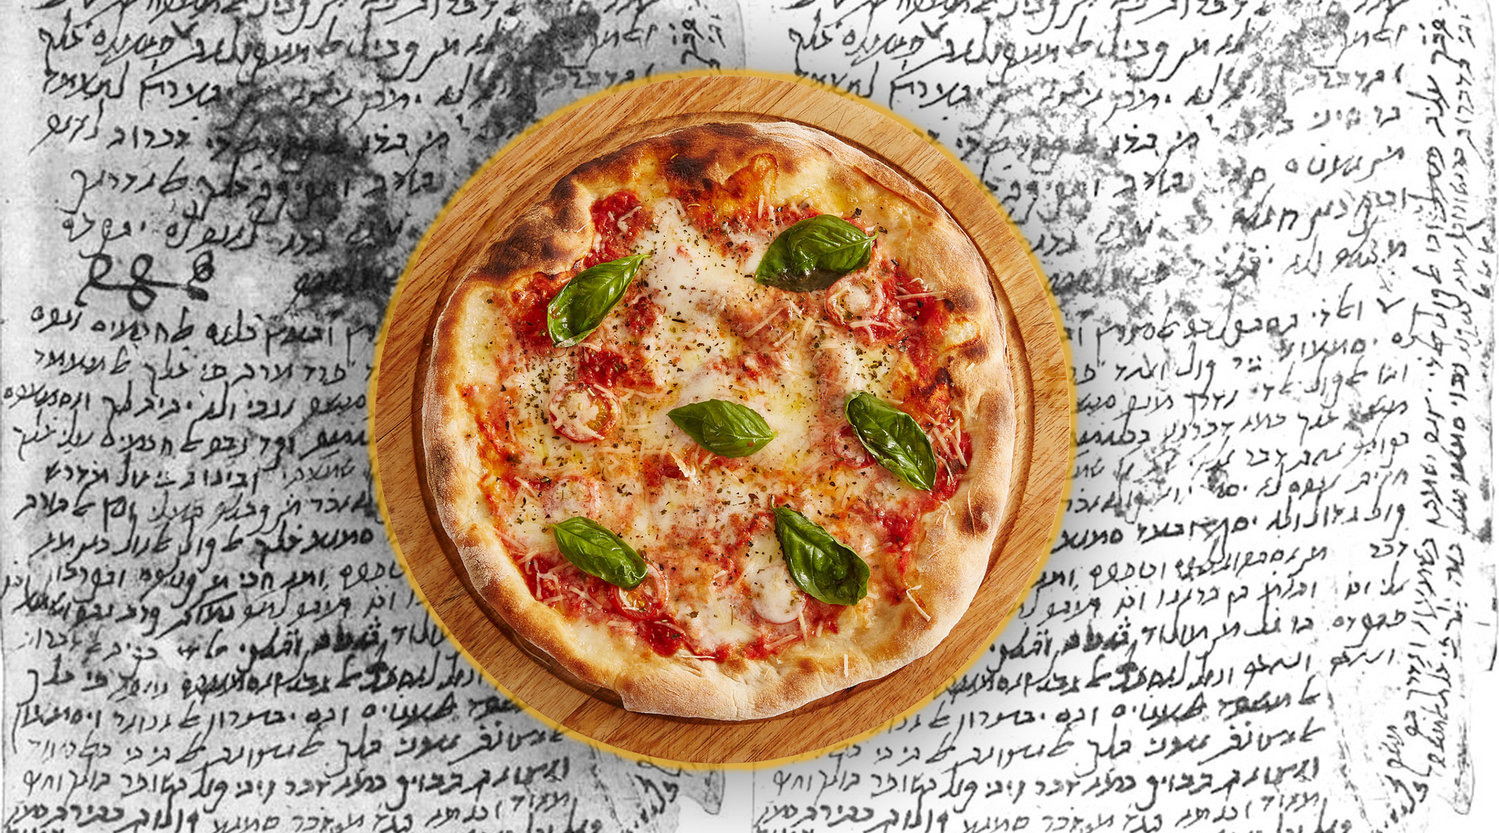 Did Maimonides introuce pizza to the world?(Wikimedia Commons / Pixabay)